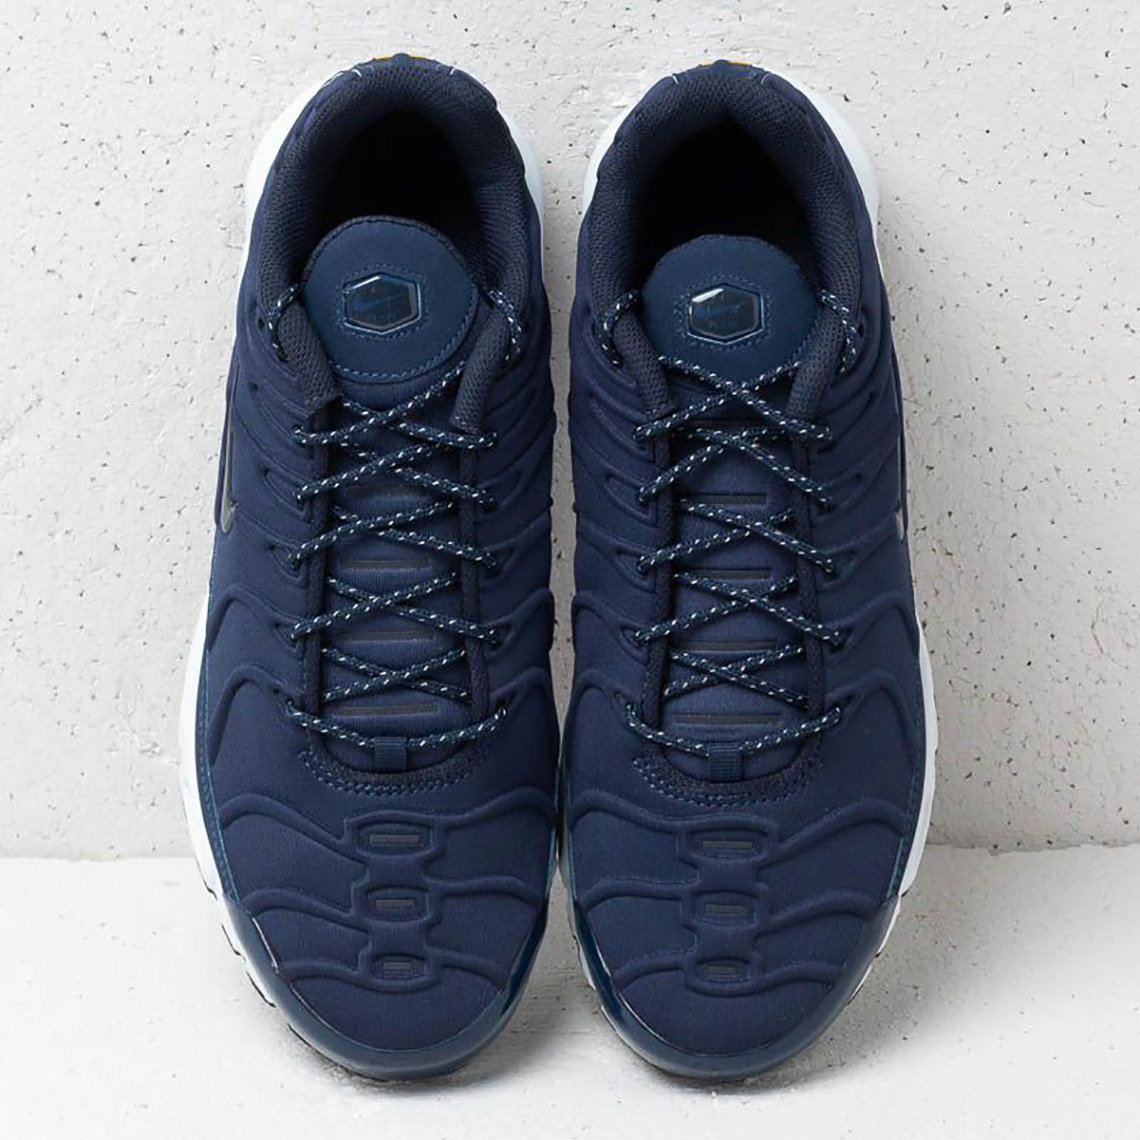 88f0a89039 Nike Air Max Plus SE Color: Midnight Navy/Midnight Navy. Where to Buy.  Footshop 10am ET. Advertisement. Advertisement